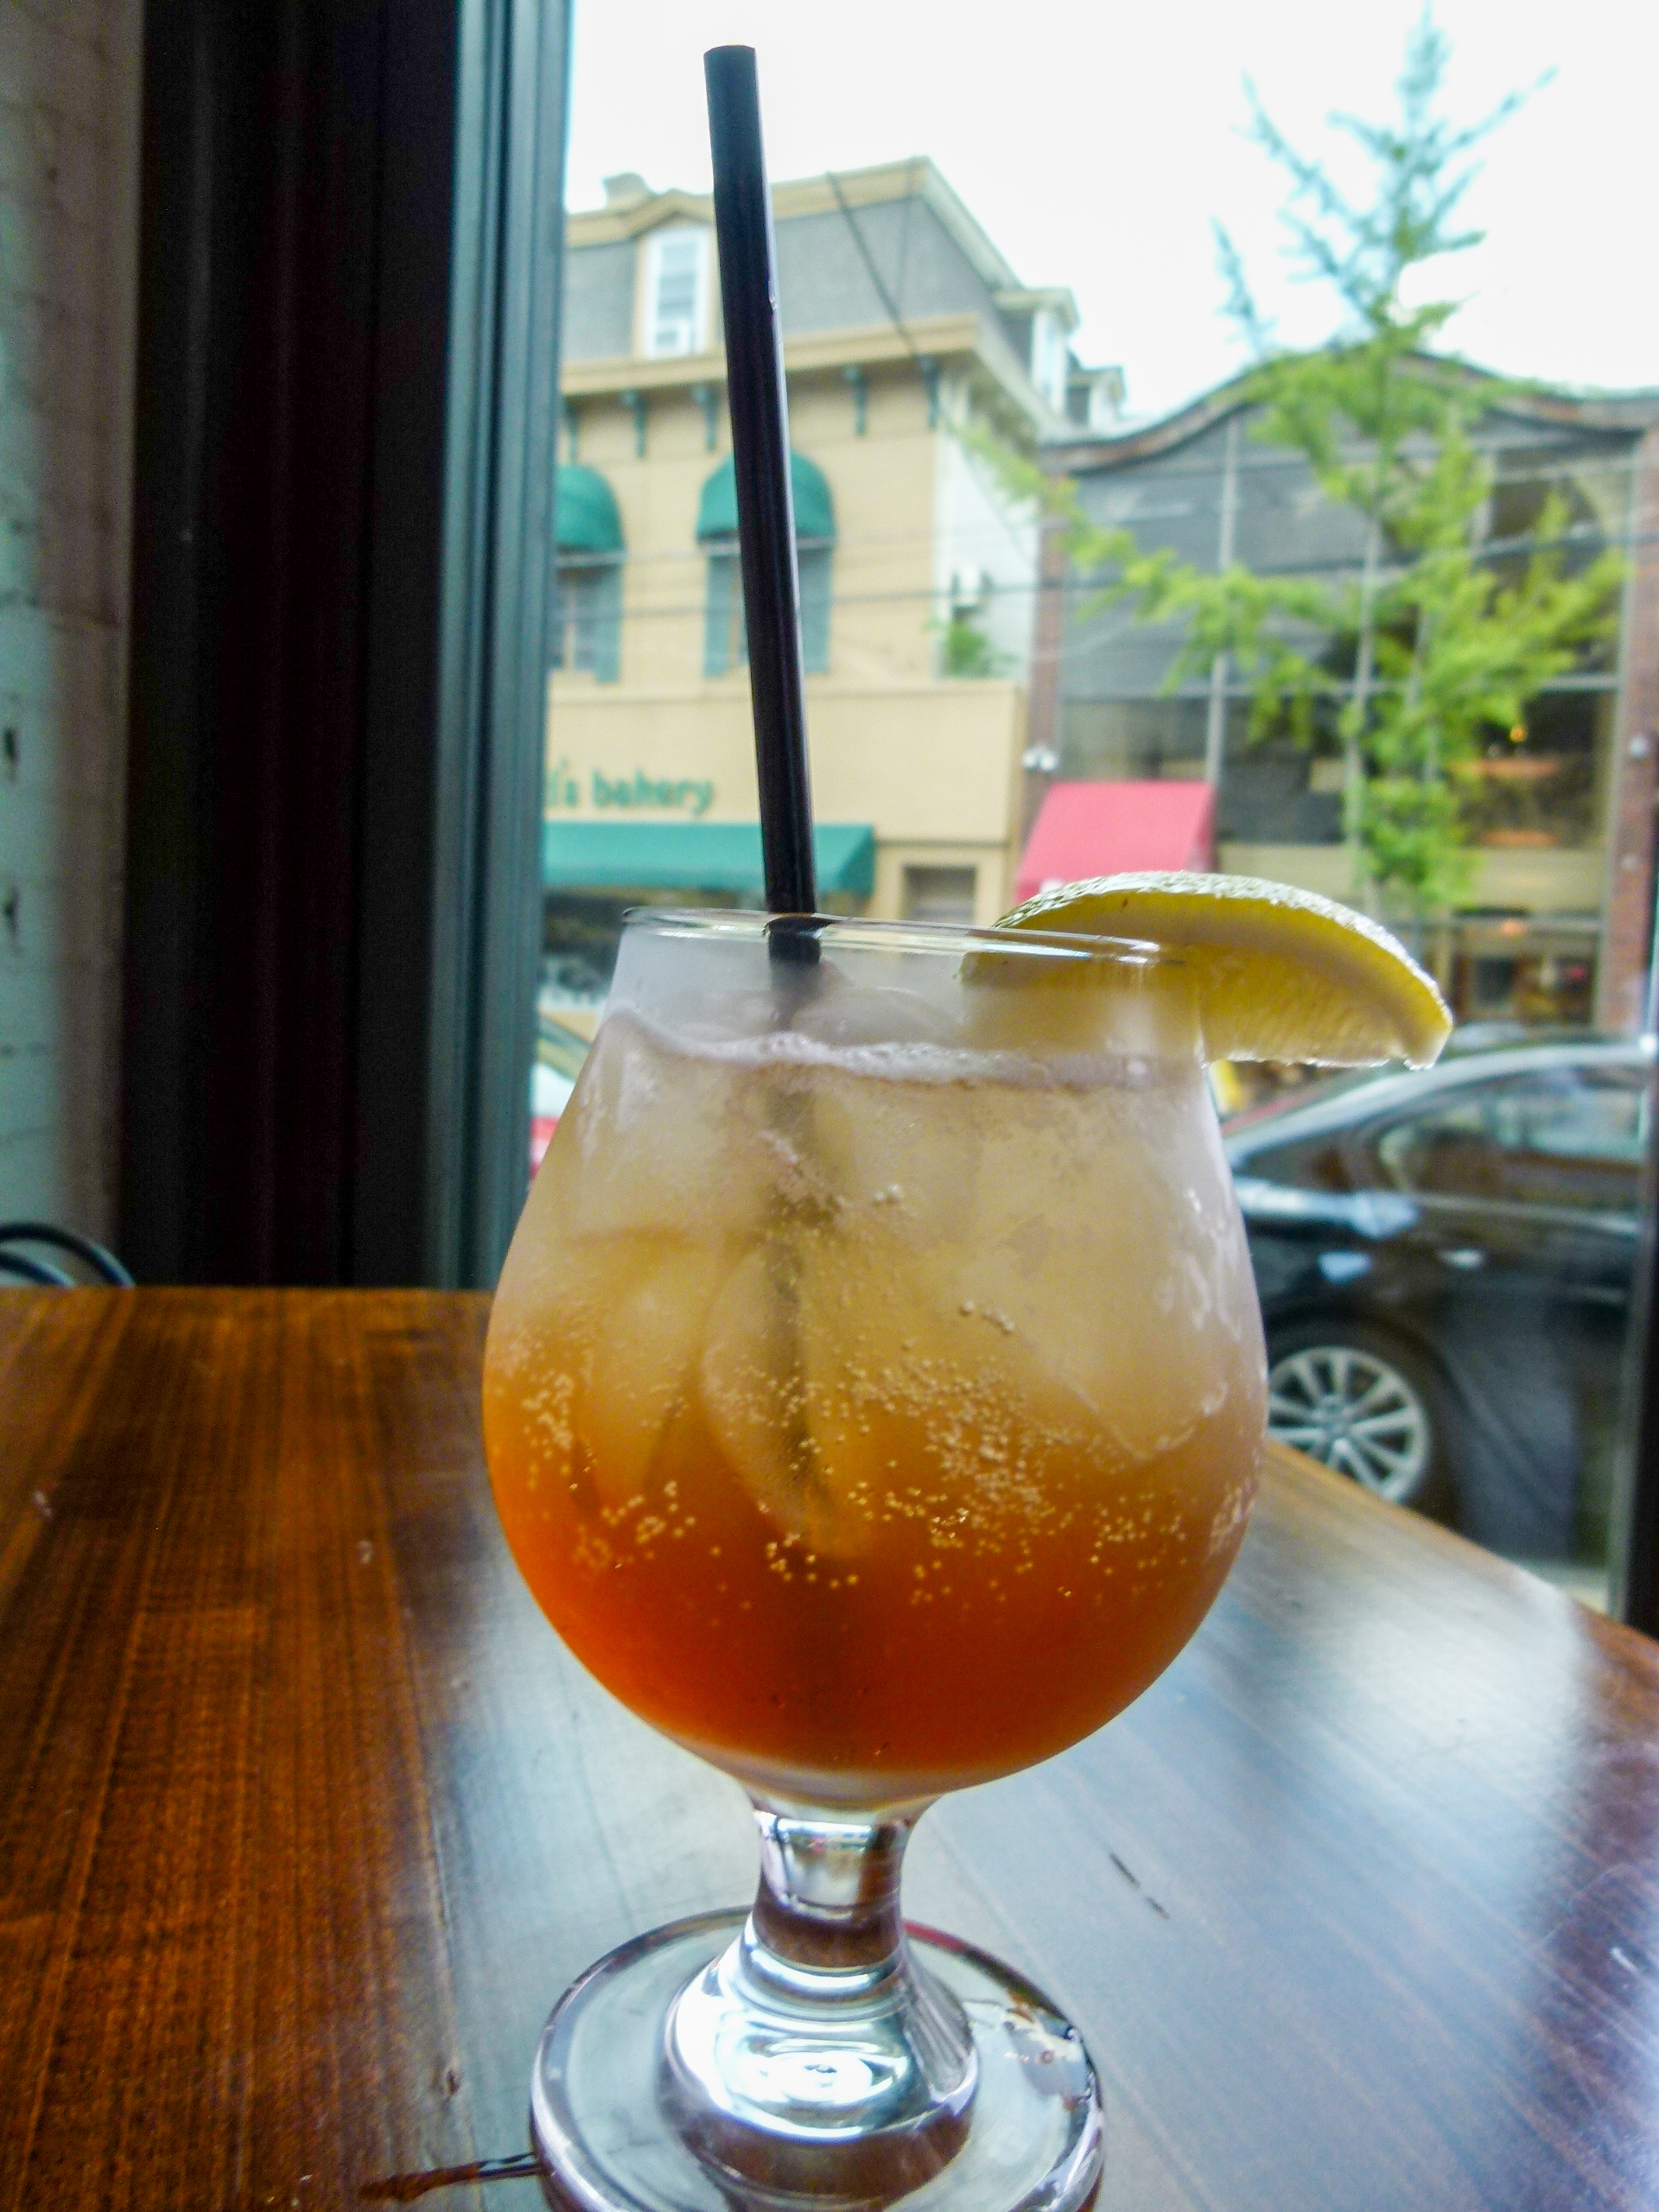 House-made Dr. Ayers Sarsaparilla.